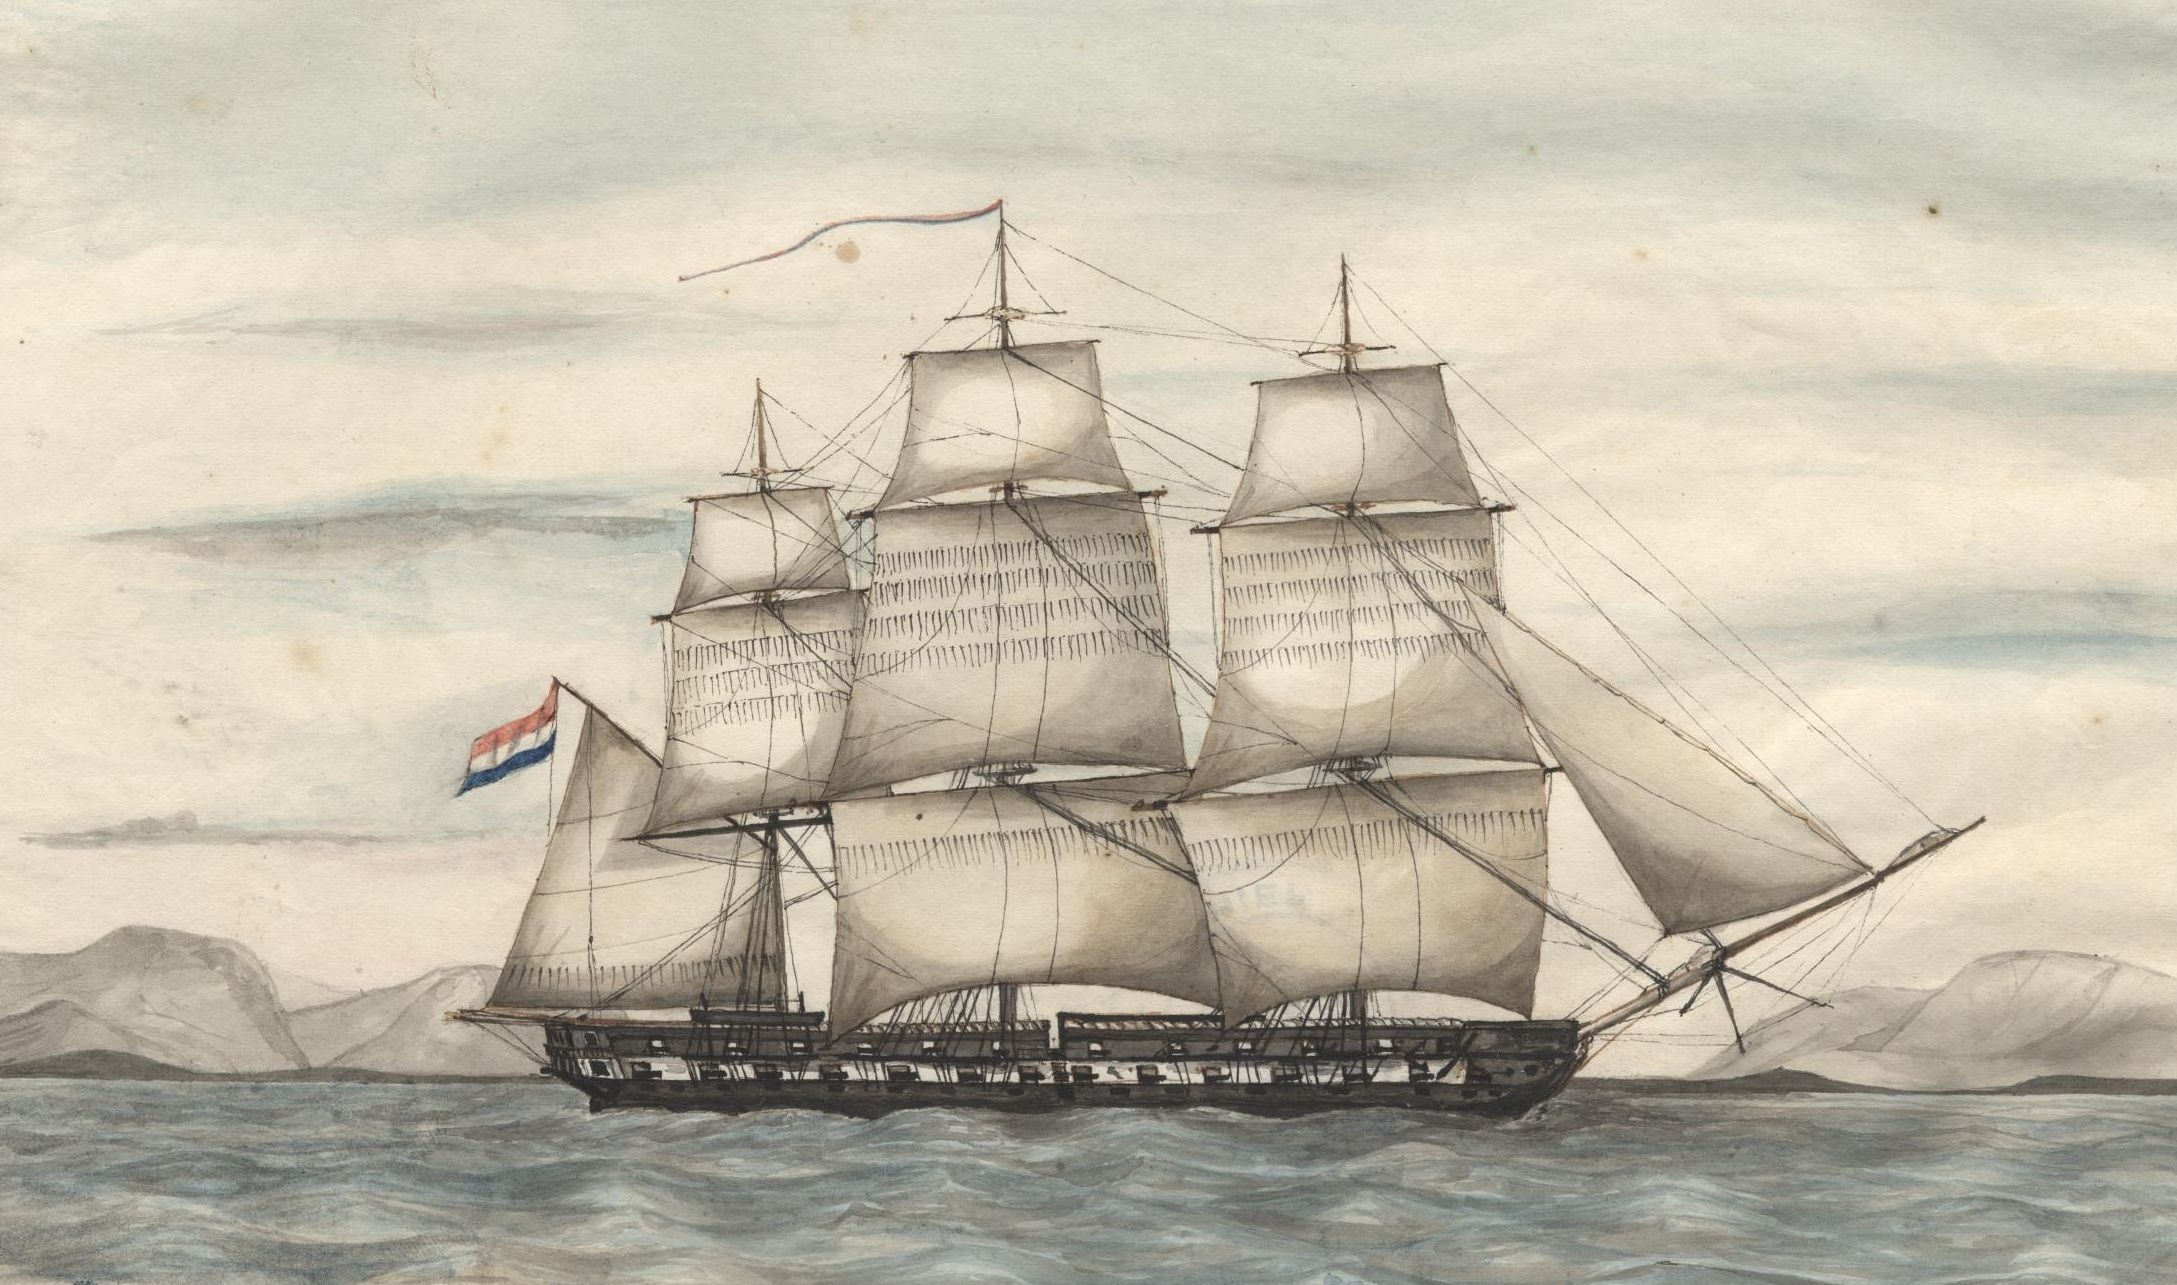 Zr.Ms. Rhijn (1816)